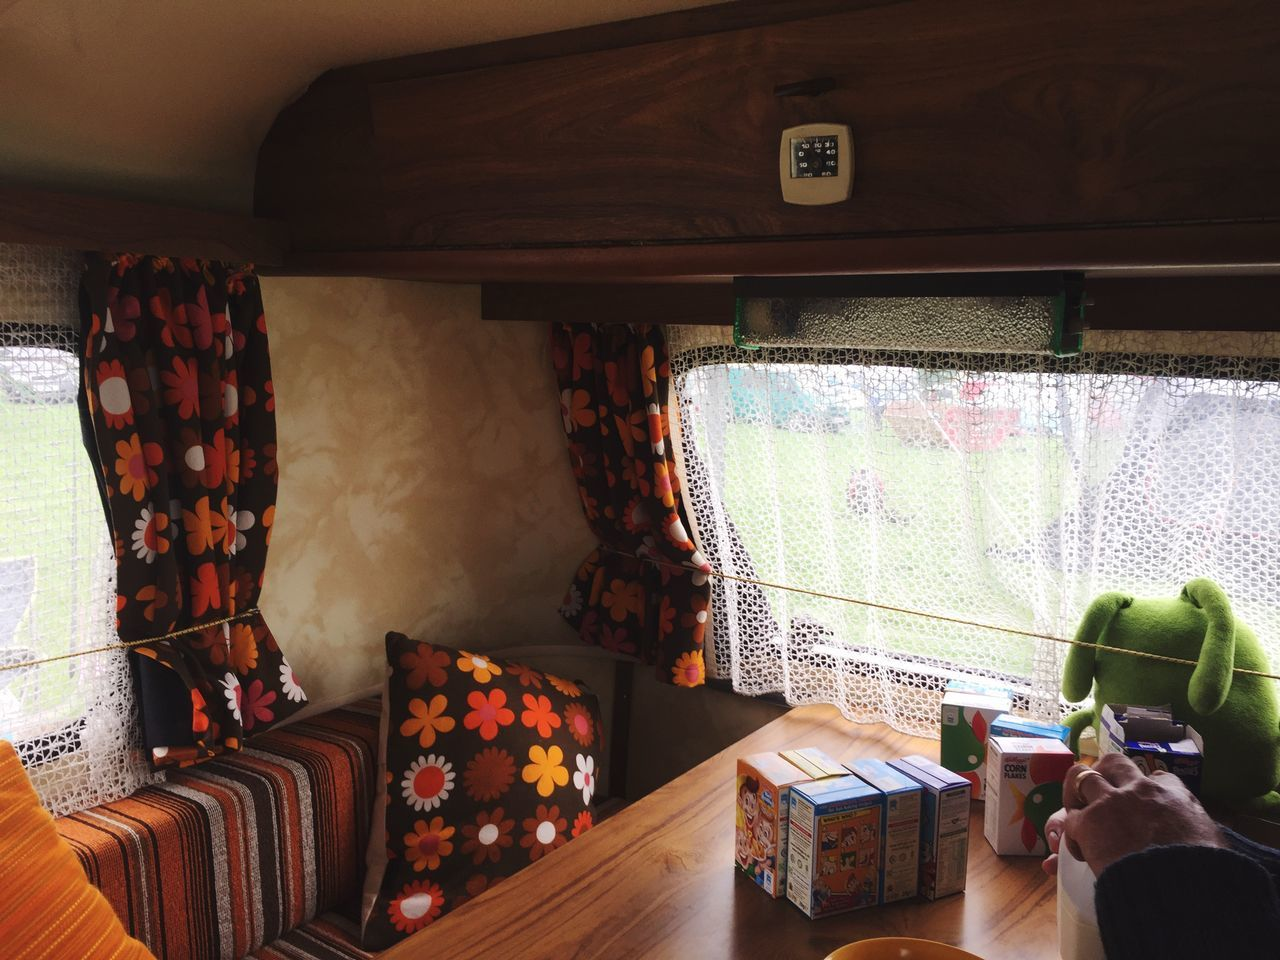 Live For The Story Retro Camping Nostalgia Camper Van Adventure Home Interior Caravan Caravanning 70s 70s Orange